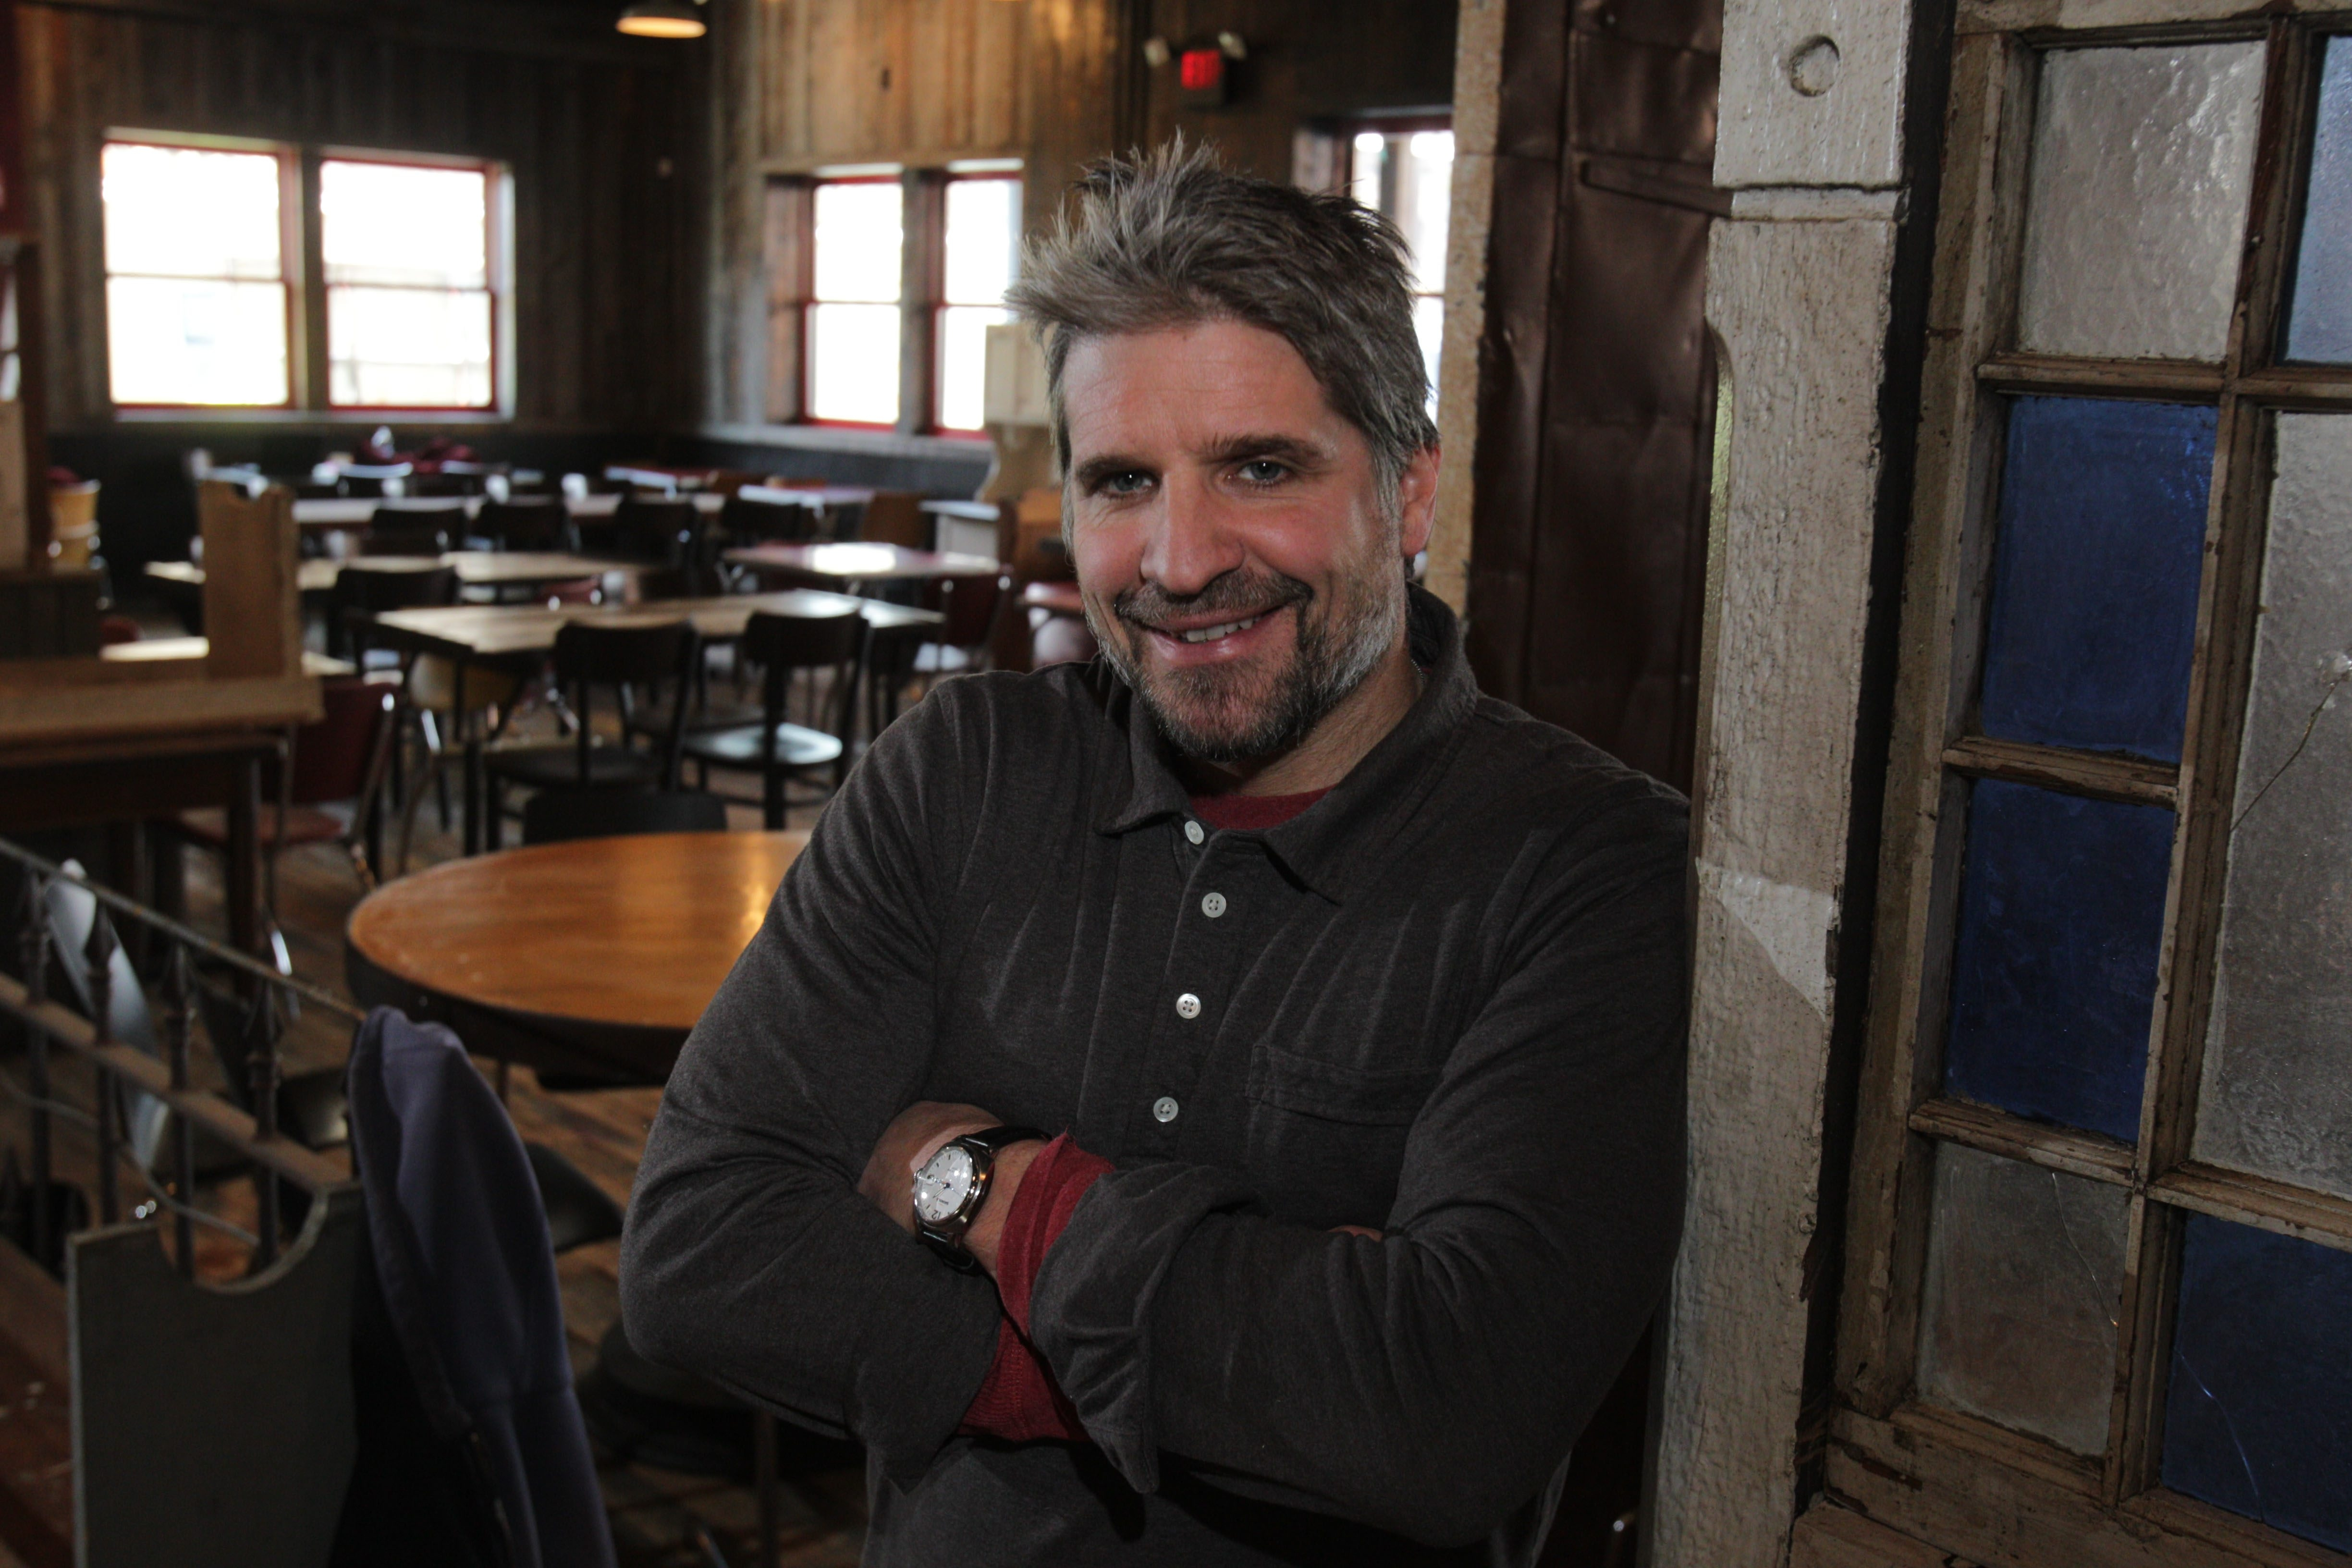 Dinosaur Bar-B-Que CEO John Stage started his barbecue empire cooking out of a 55-gallon drum at biker rallies. Thenew restaurant on Franklin Street is due to open Feb. 12. . in Buffalo,  On right is a dividing  wall constructed from pieces found in the basement.